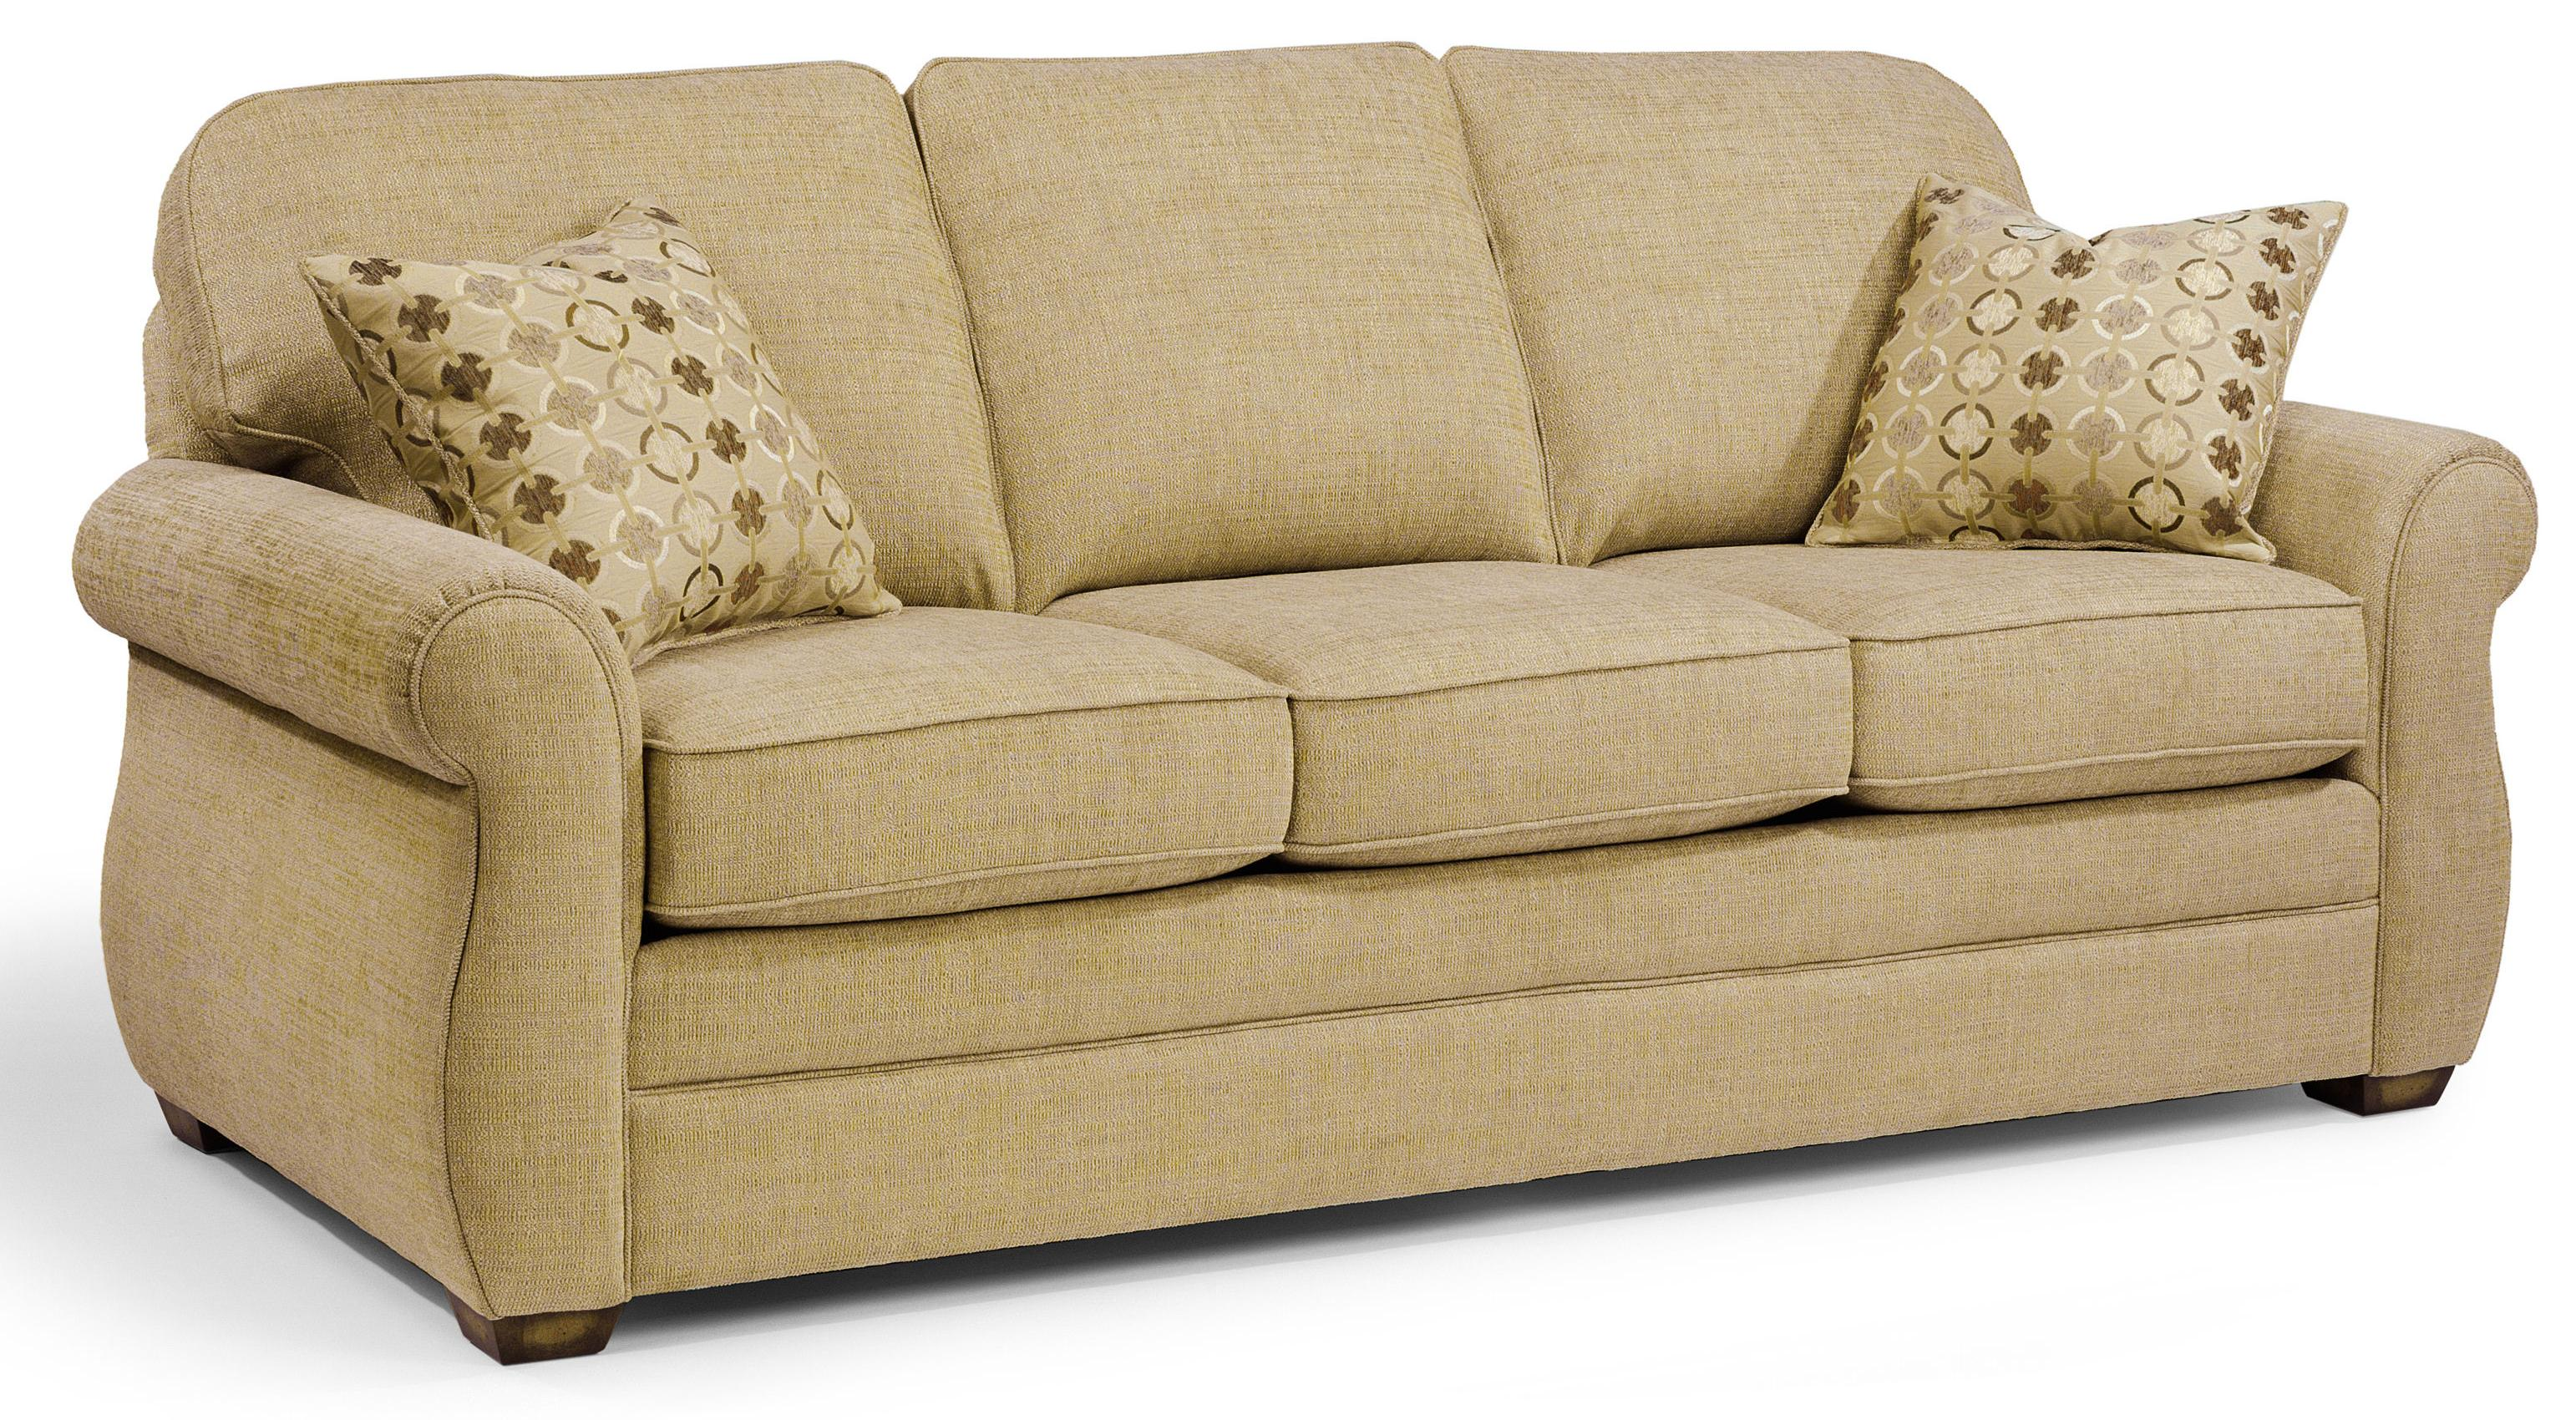 Whitney Sofa With Turned Arms And Wood Block Feet By Flexsteel